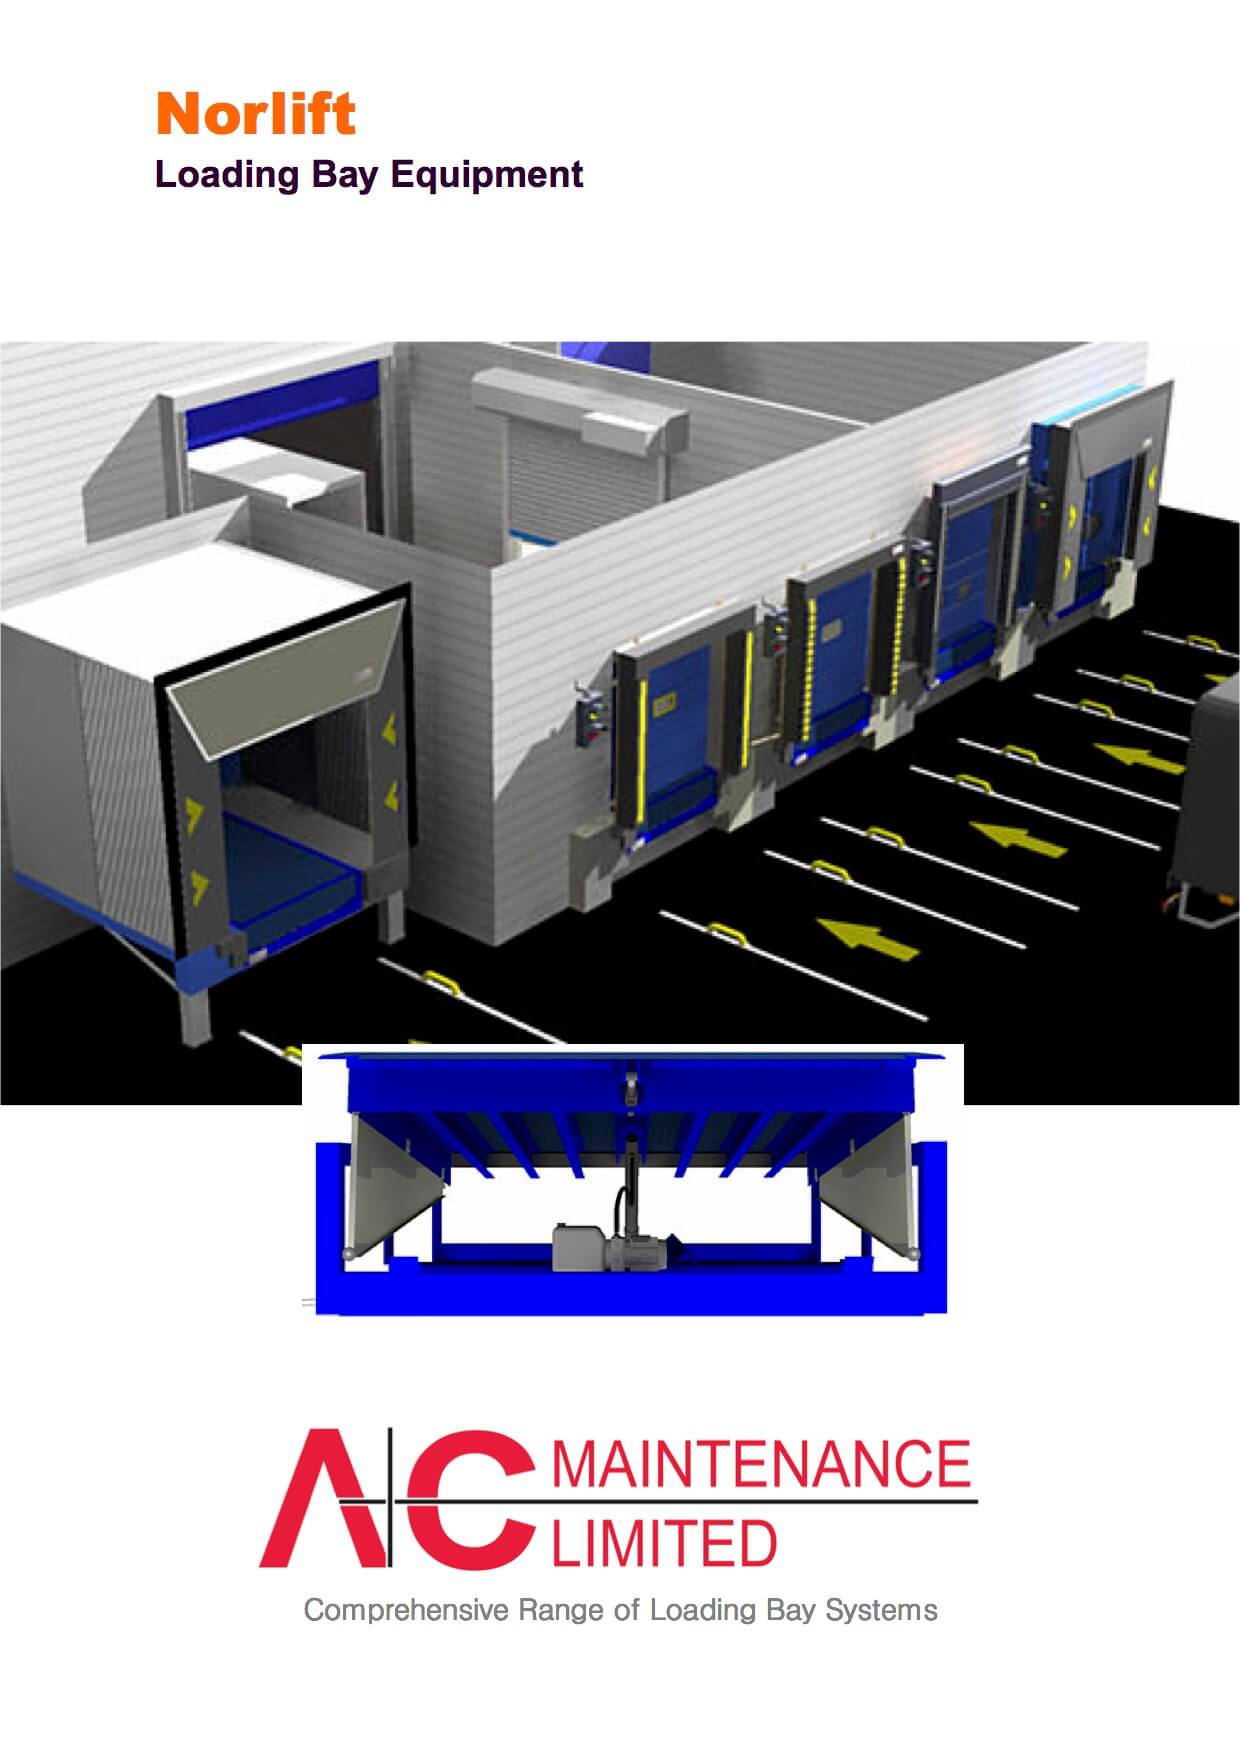 http://www.aandcmaintenance.co.uk/wp-content/uploads/Loading-Bay-Equipment.jpg